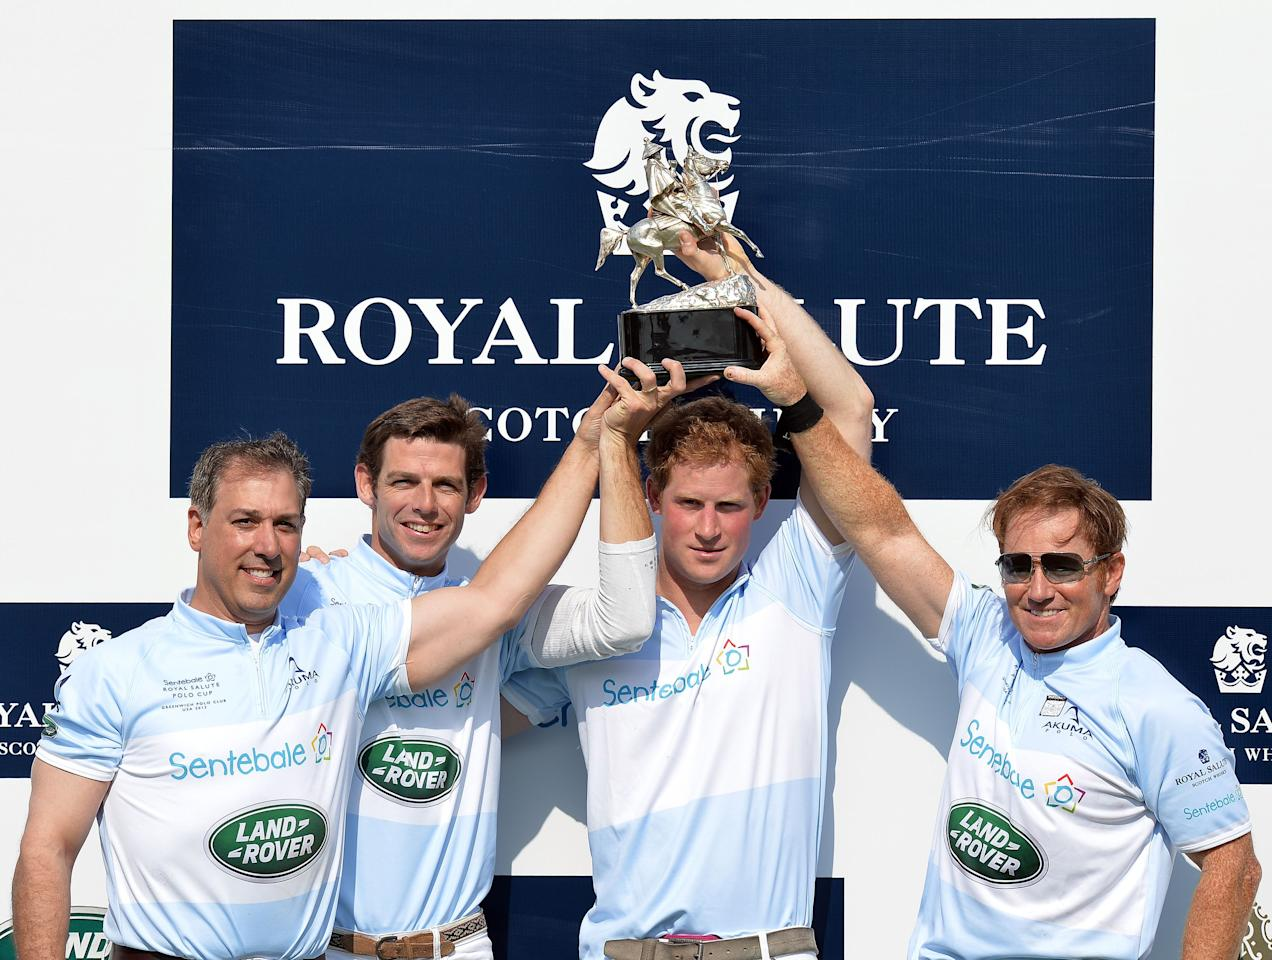 (left to right) Michael Carrazza, Malcolm Borwick, Prince Harry and Marc Ganzi, lift the winners trophy following the Sentebale Royal Salute Polo Cup, at the Greenwich Polo Club, Connecticut, USA, in which Prince Harry played in as part of his tour of the USA.